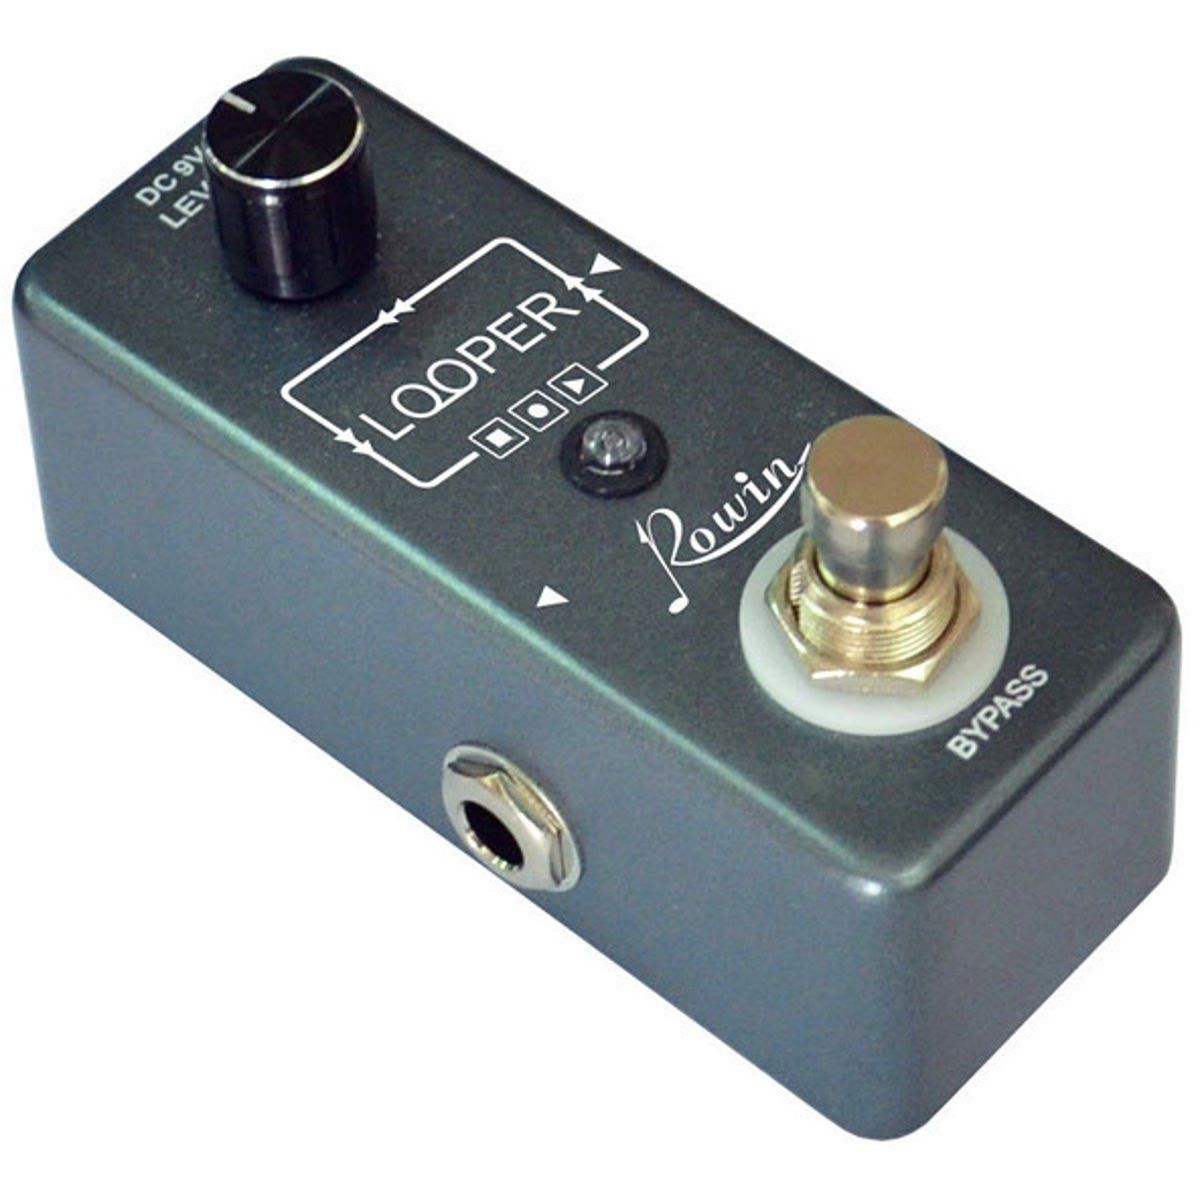 Pedal Digital Rowin Looper